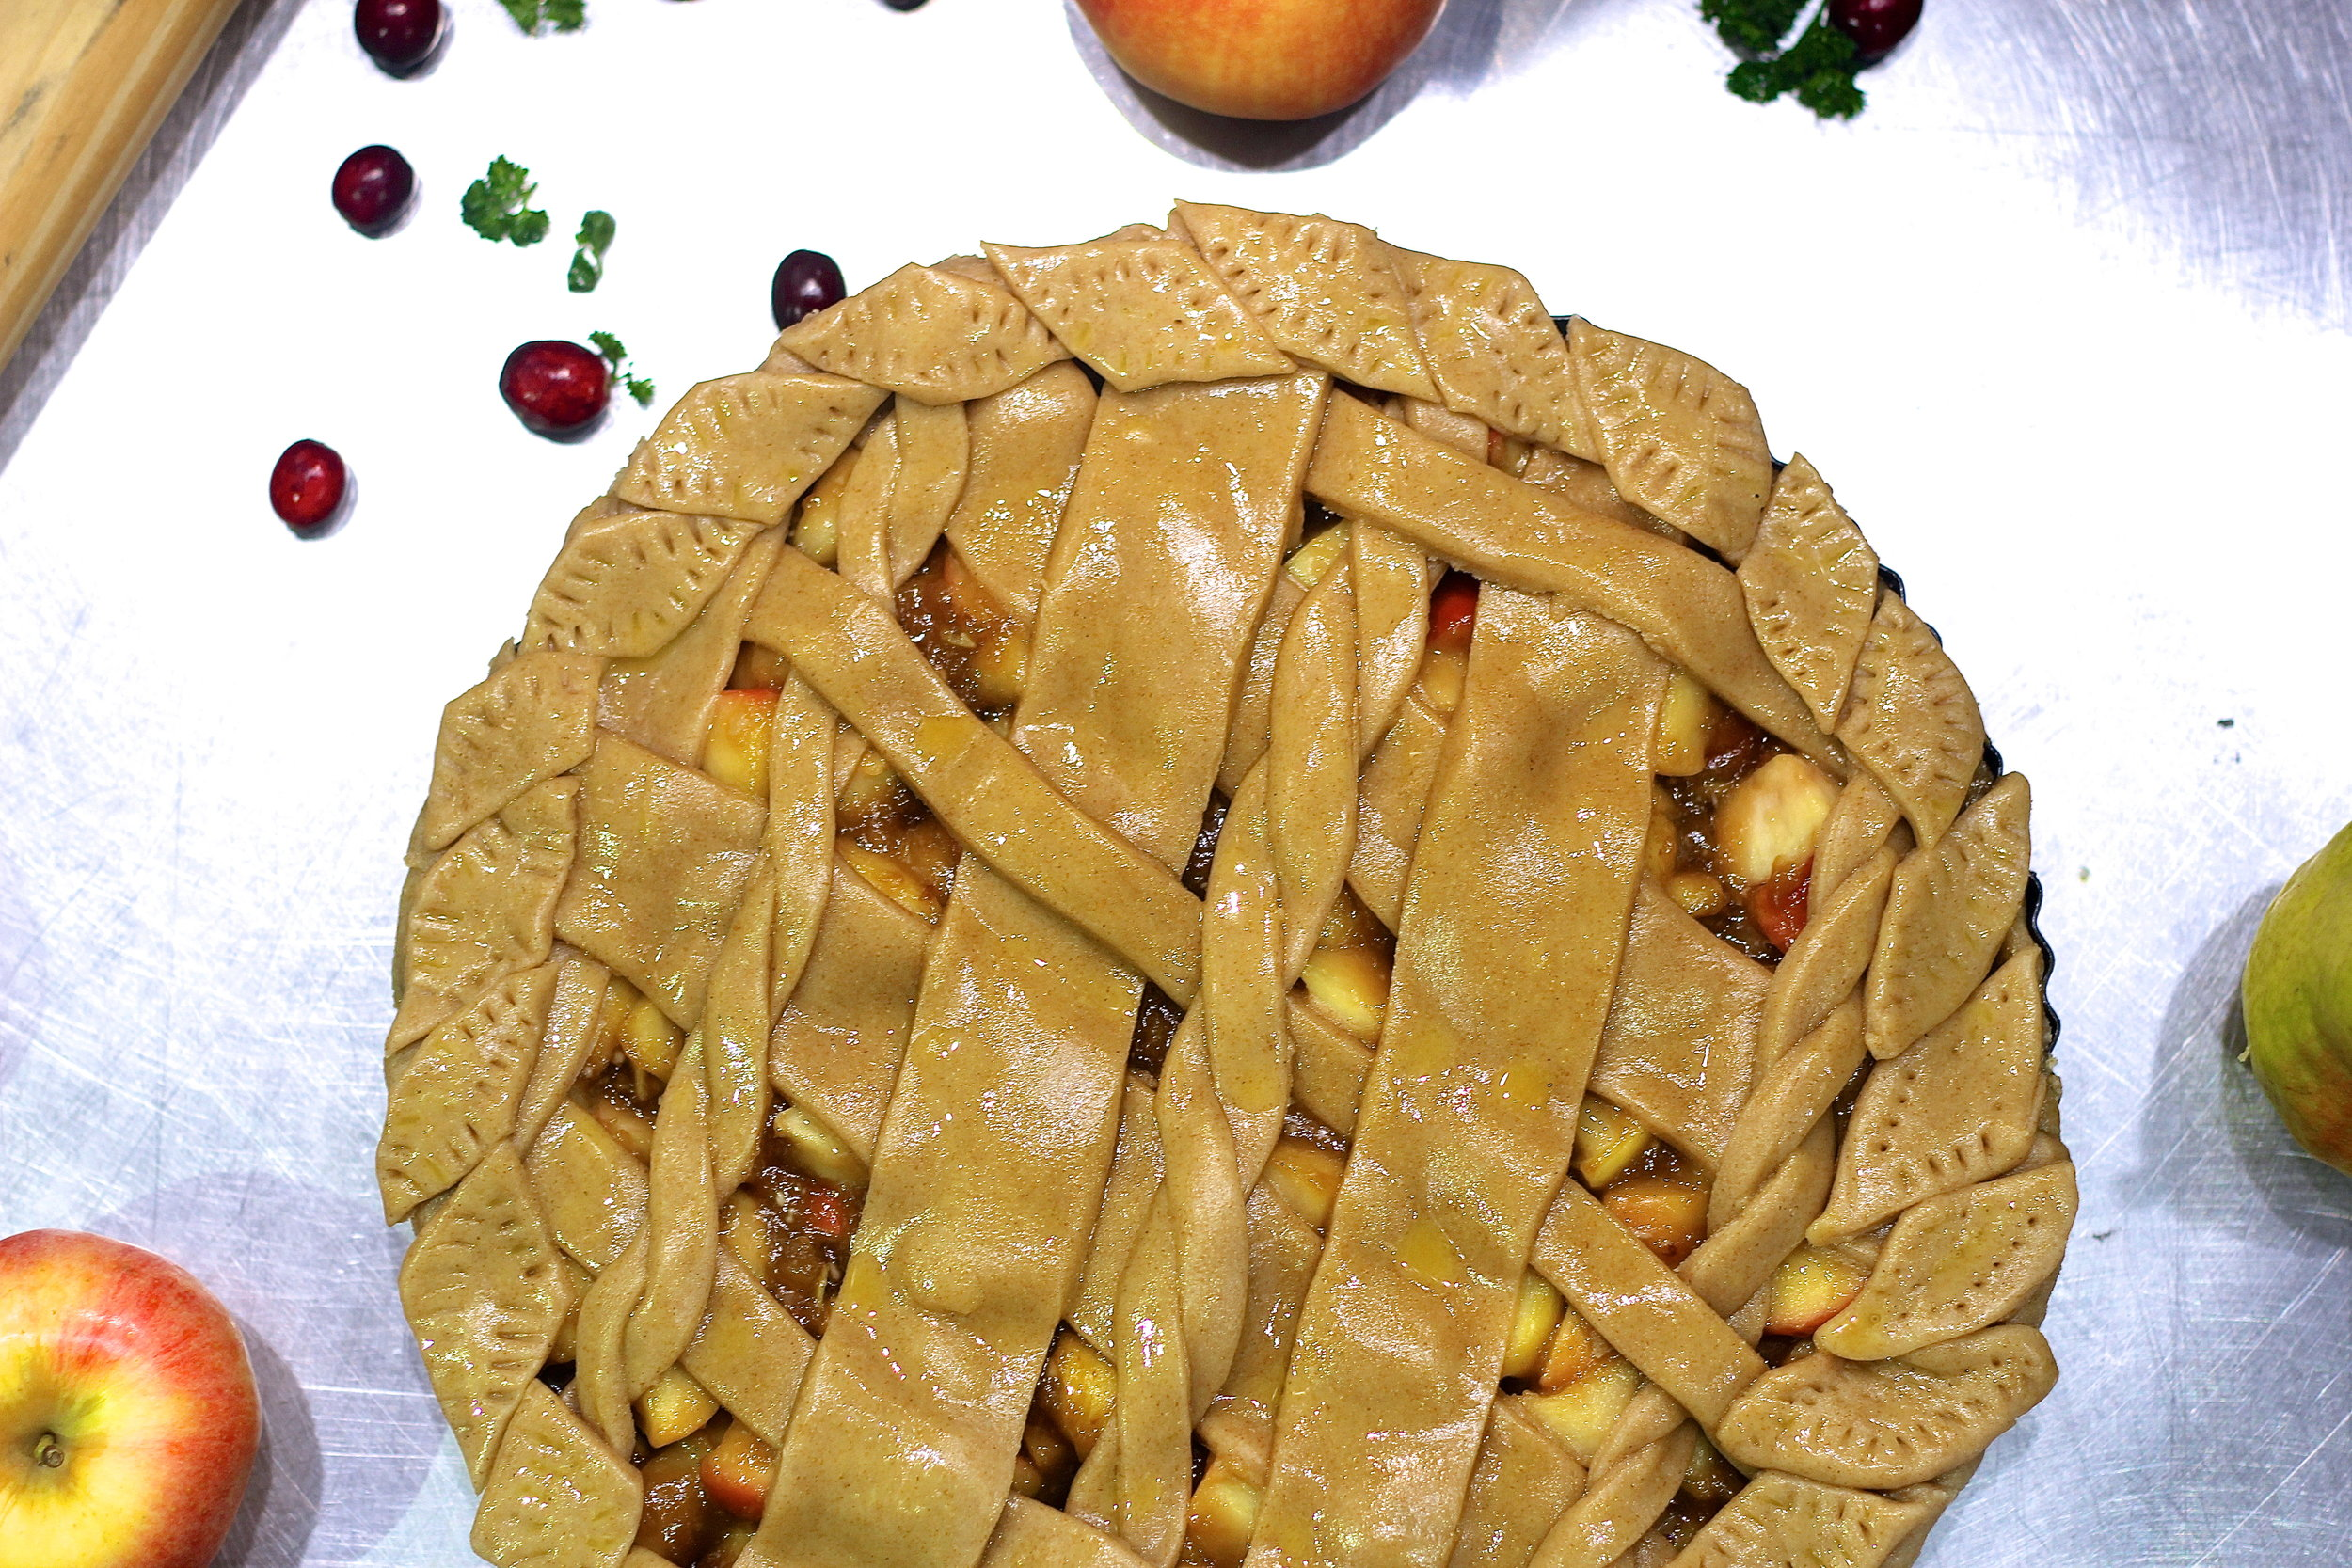 All pies are made from scratch and generously feed more than 10 persons (they are huge!).